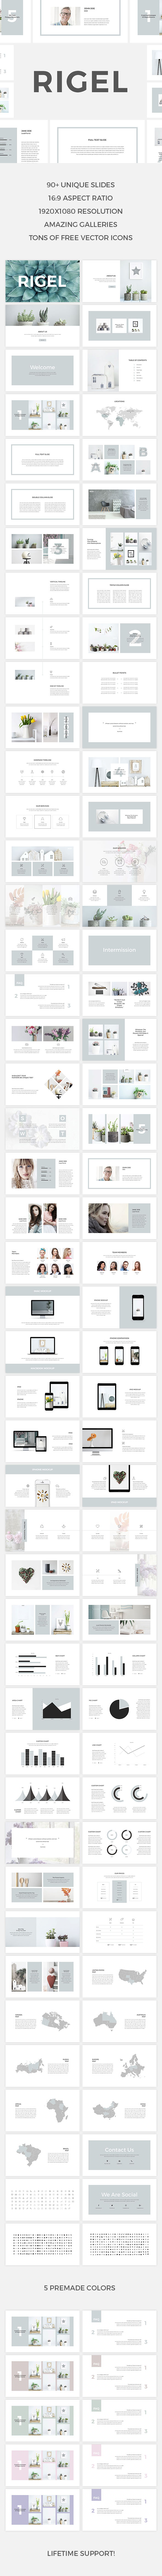 Rigel PowerPoint Template - PowerPoint Templates Presentation Templates